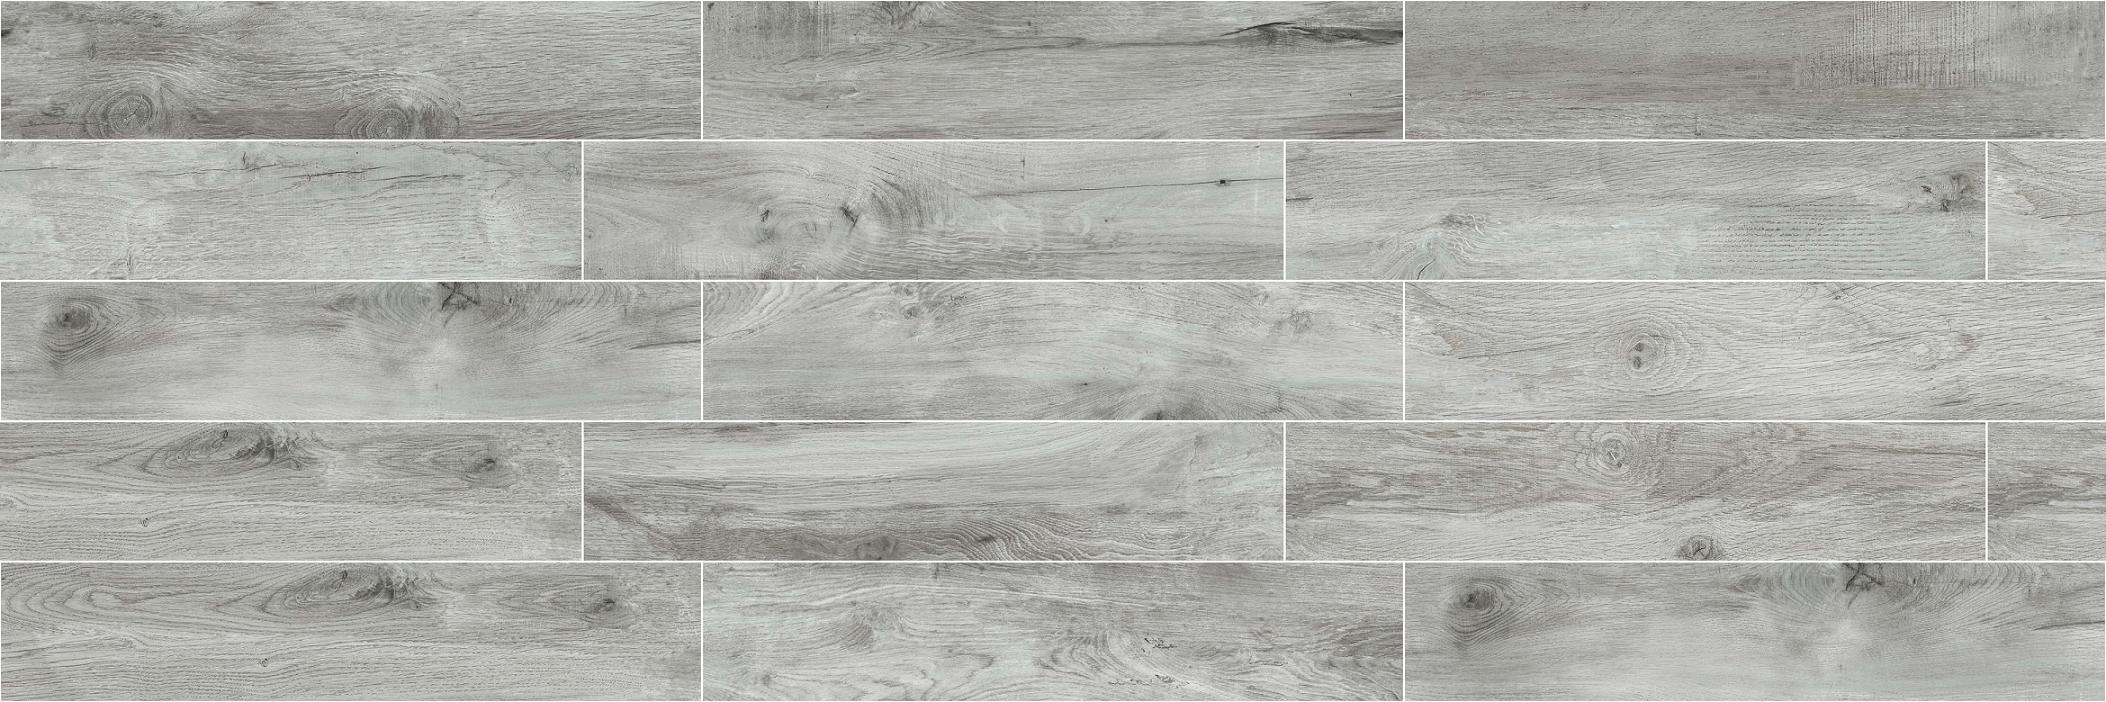 High Quality Building Material Porcelain Wood Tile Floor Tile Lnc2012019 Grey